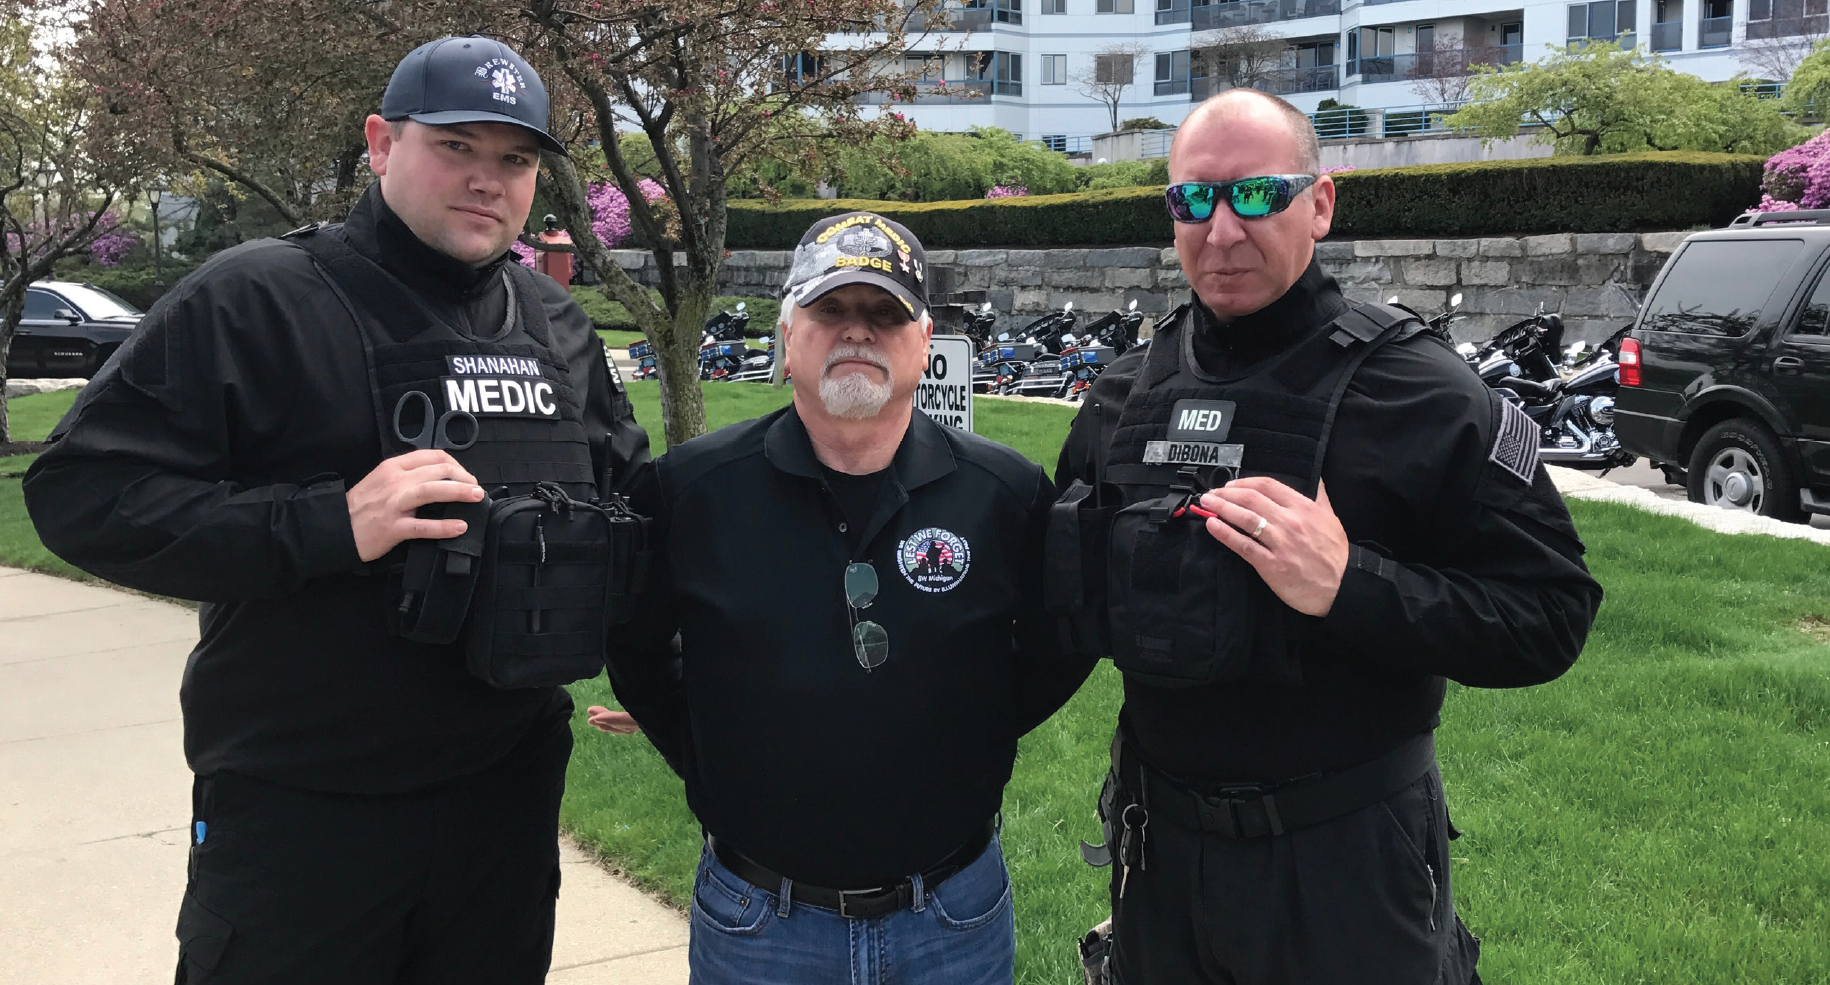 Adam Shanahan and Chris DiBona Tactical Paramedics on protection detail with Congressional Medal of Honor recipient James C. McCloughan